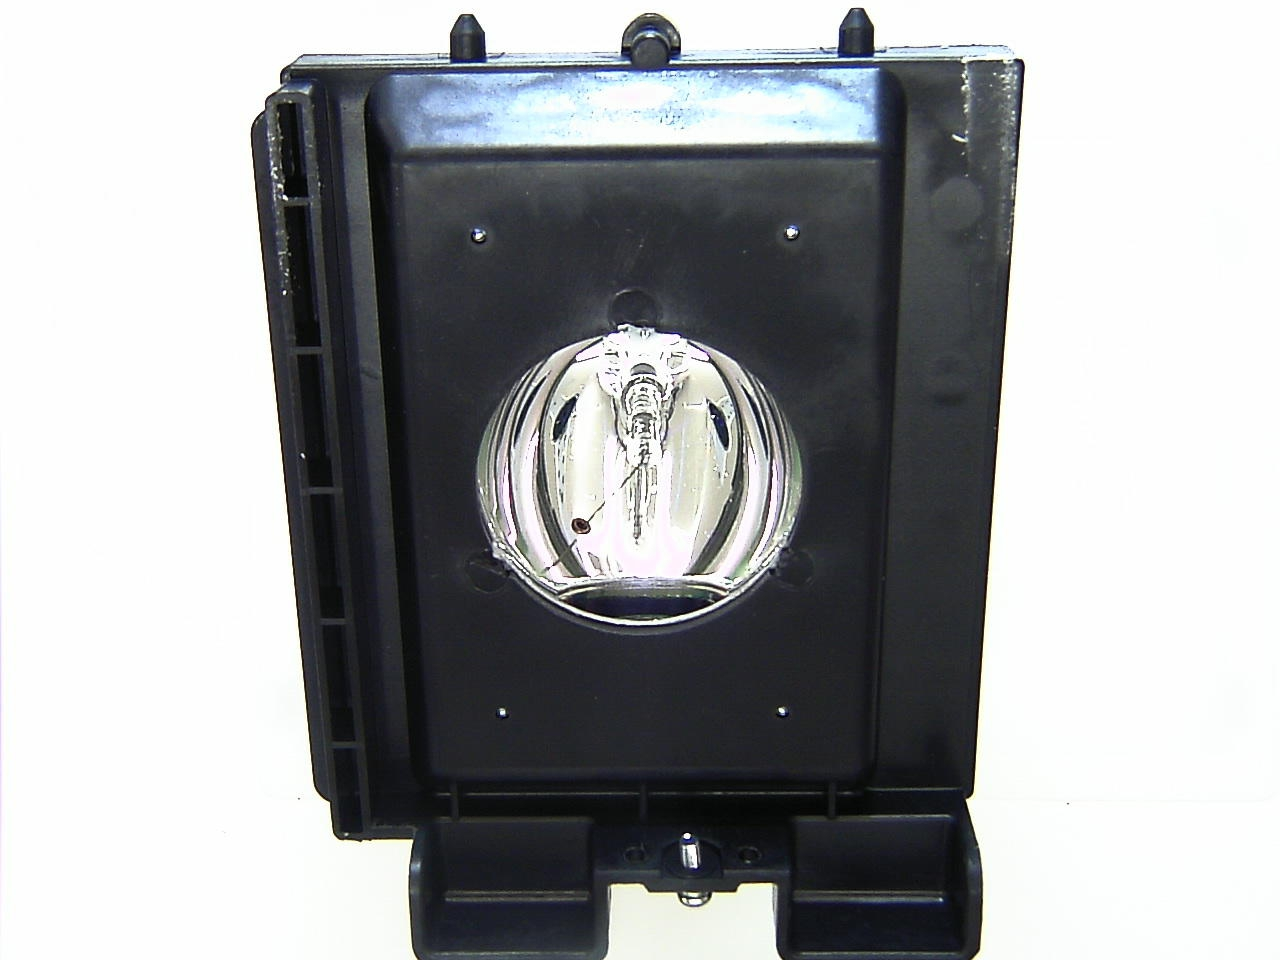 SAMSUNG SAMSUNG HL-P5063WX/XA Genuine Original Rear projection TV Lamp